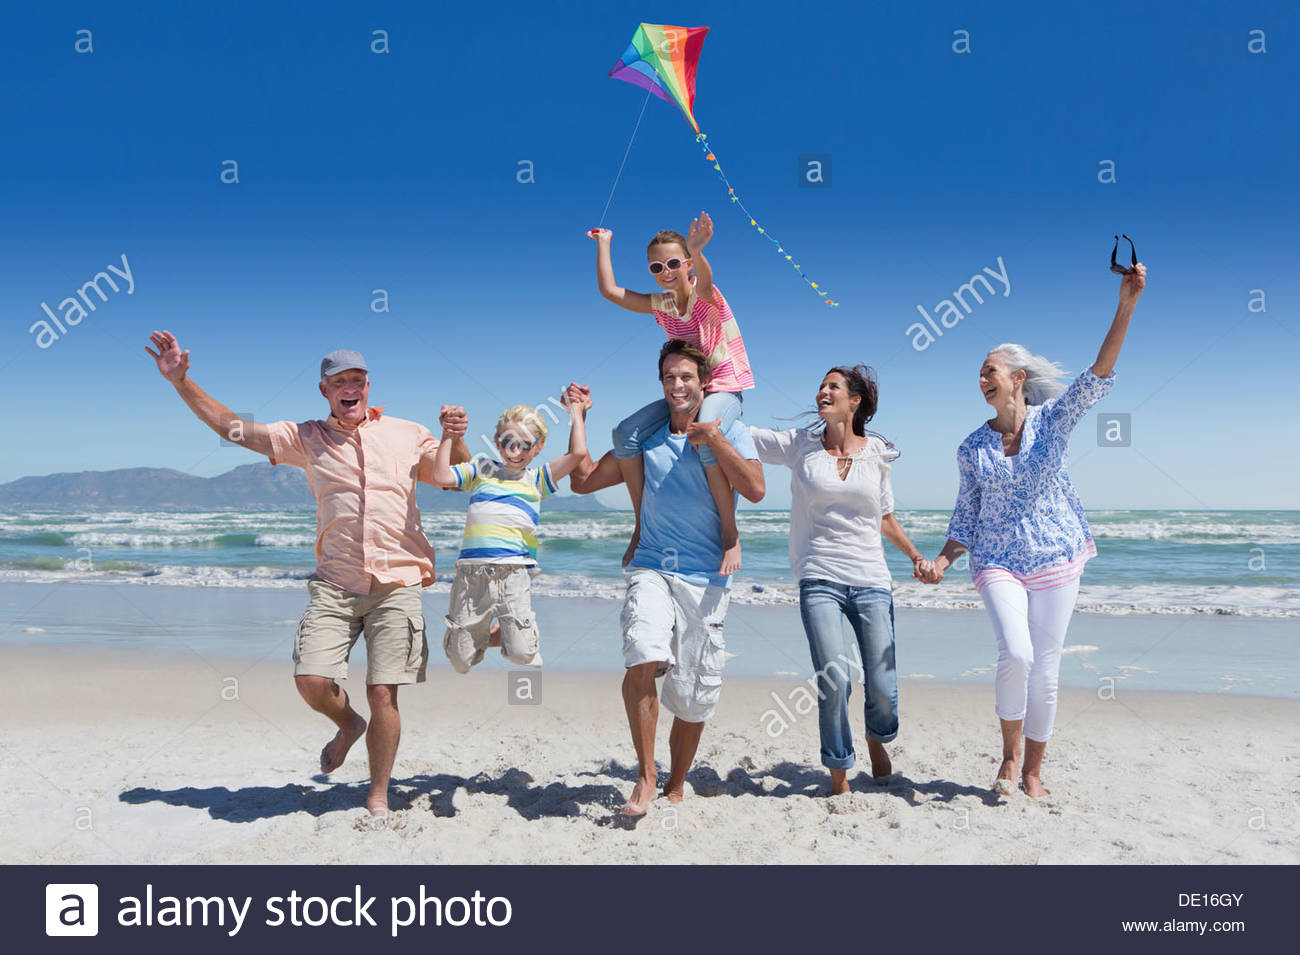 Happy multi-generation family with kite running and waving on sunny beach - Stock Image